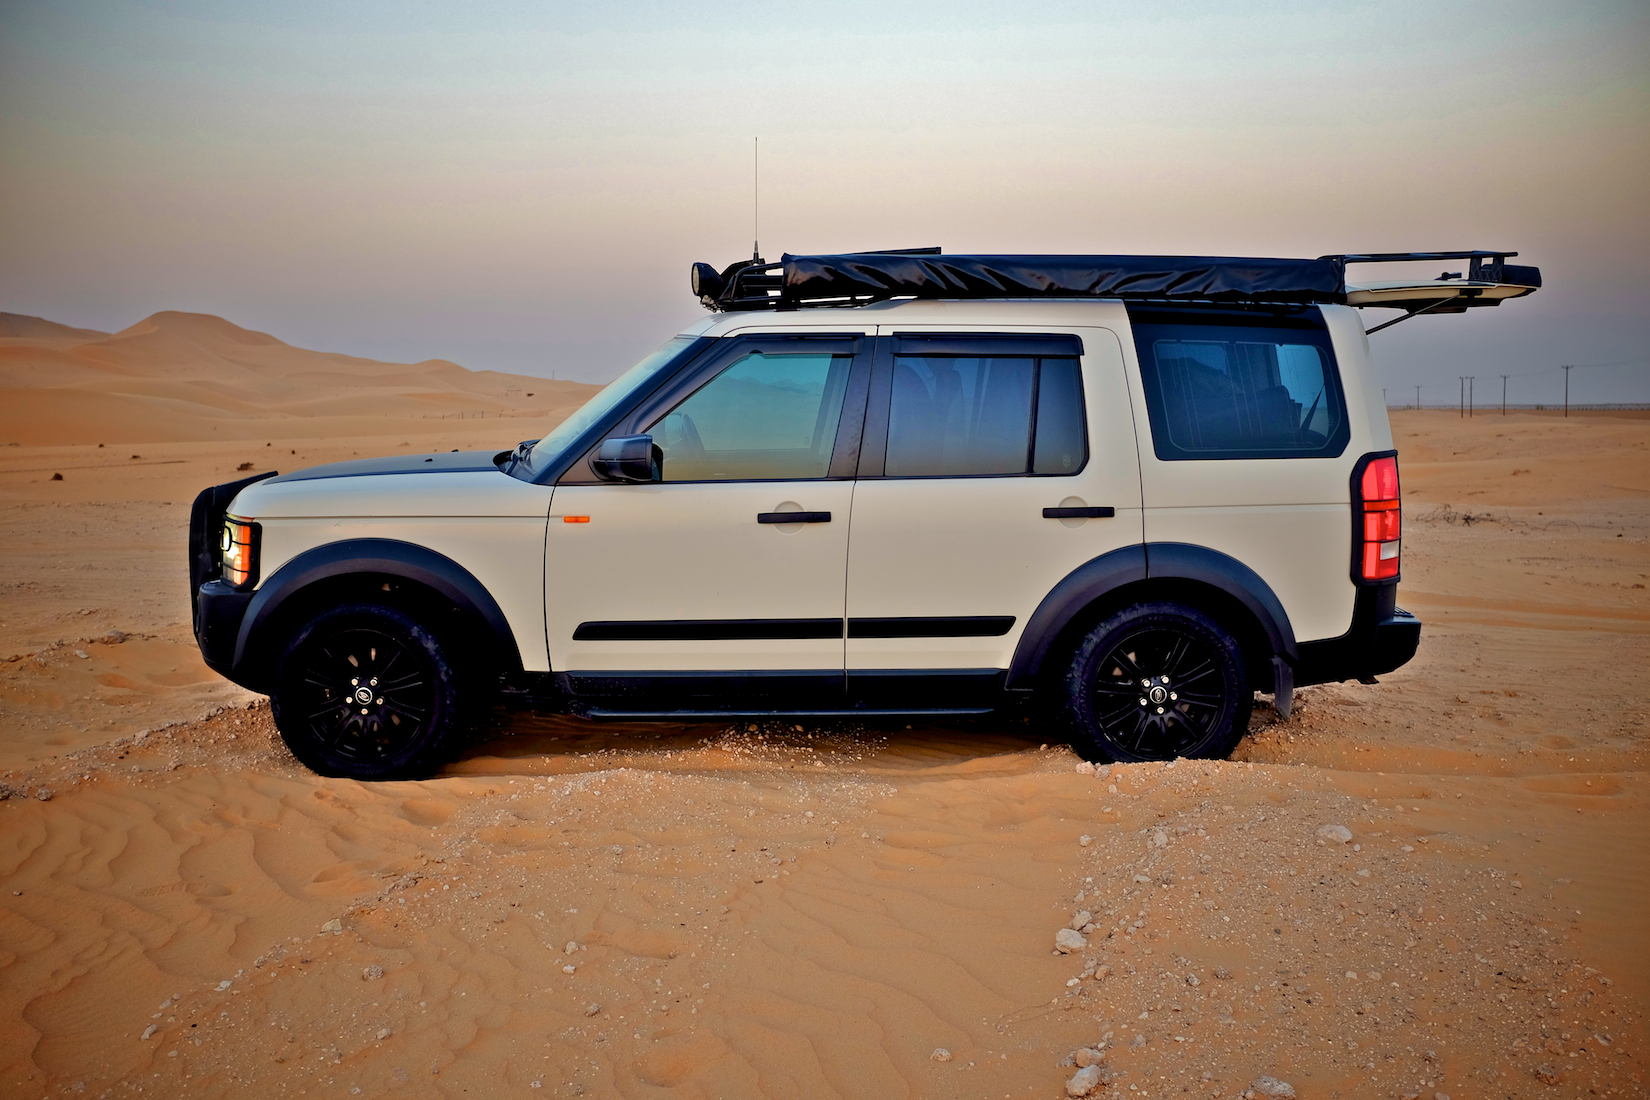 Not sure a roof-top-tent can be that sleek but there is a handy ladder to reach the roof if needed. Land Rover & Land Rover | Weekend ideas for the UAE